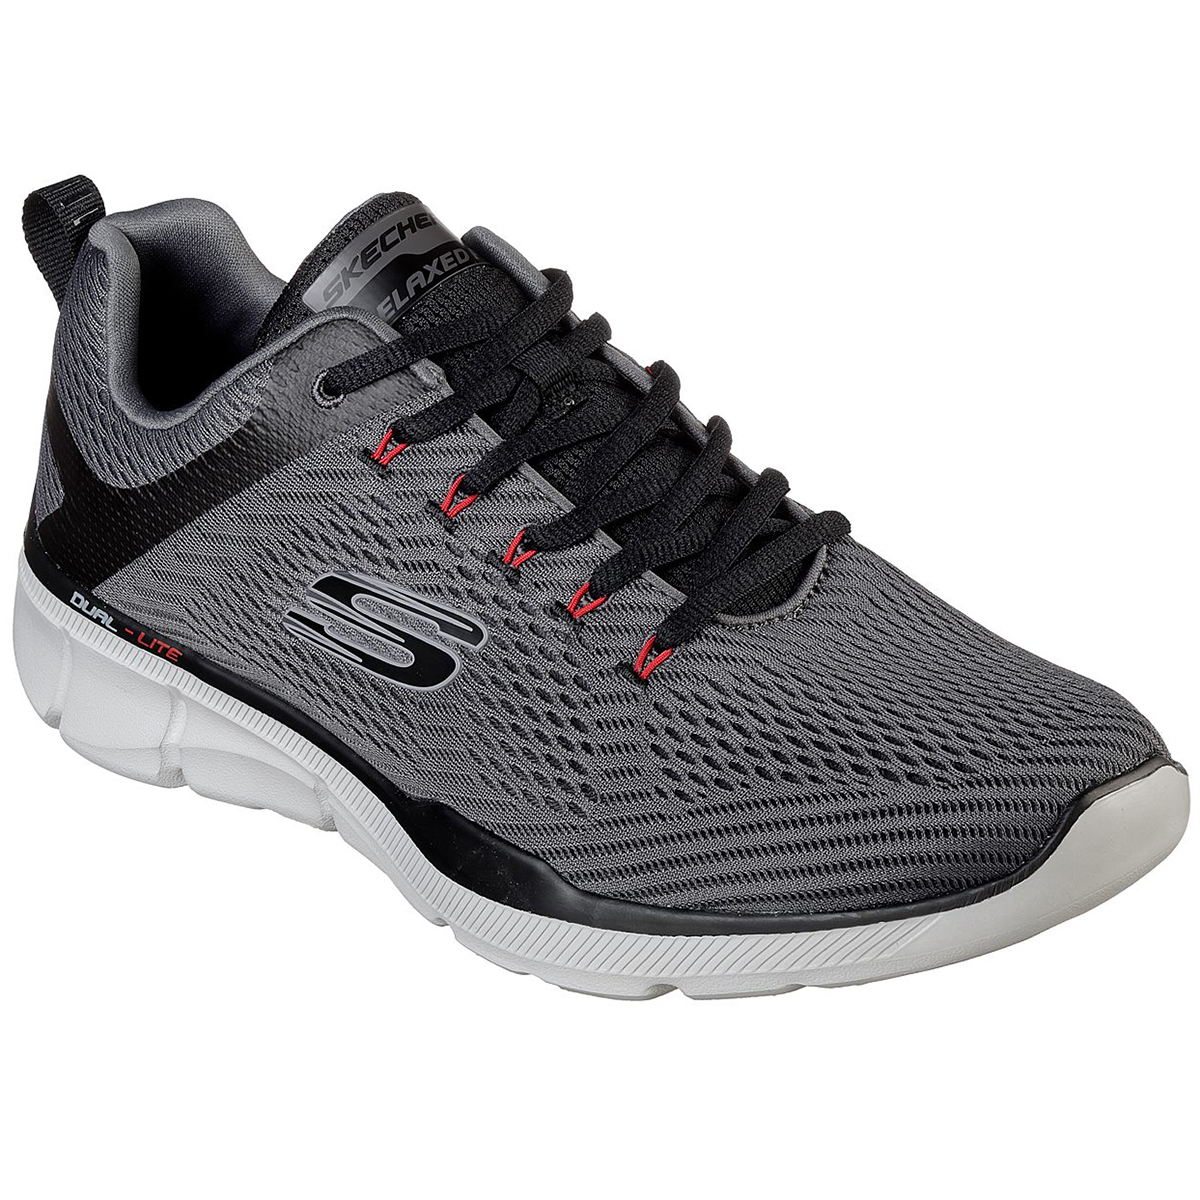 Skechers Men's Equalizer 3.0 Lace Up Shoes, Relaxed Fit - Black, 9.5